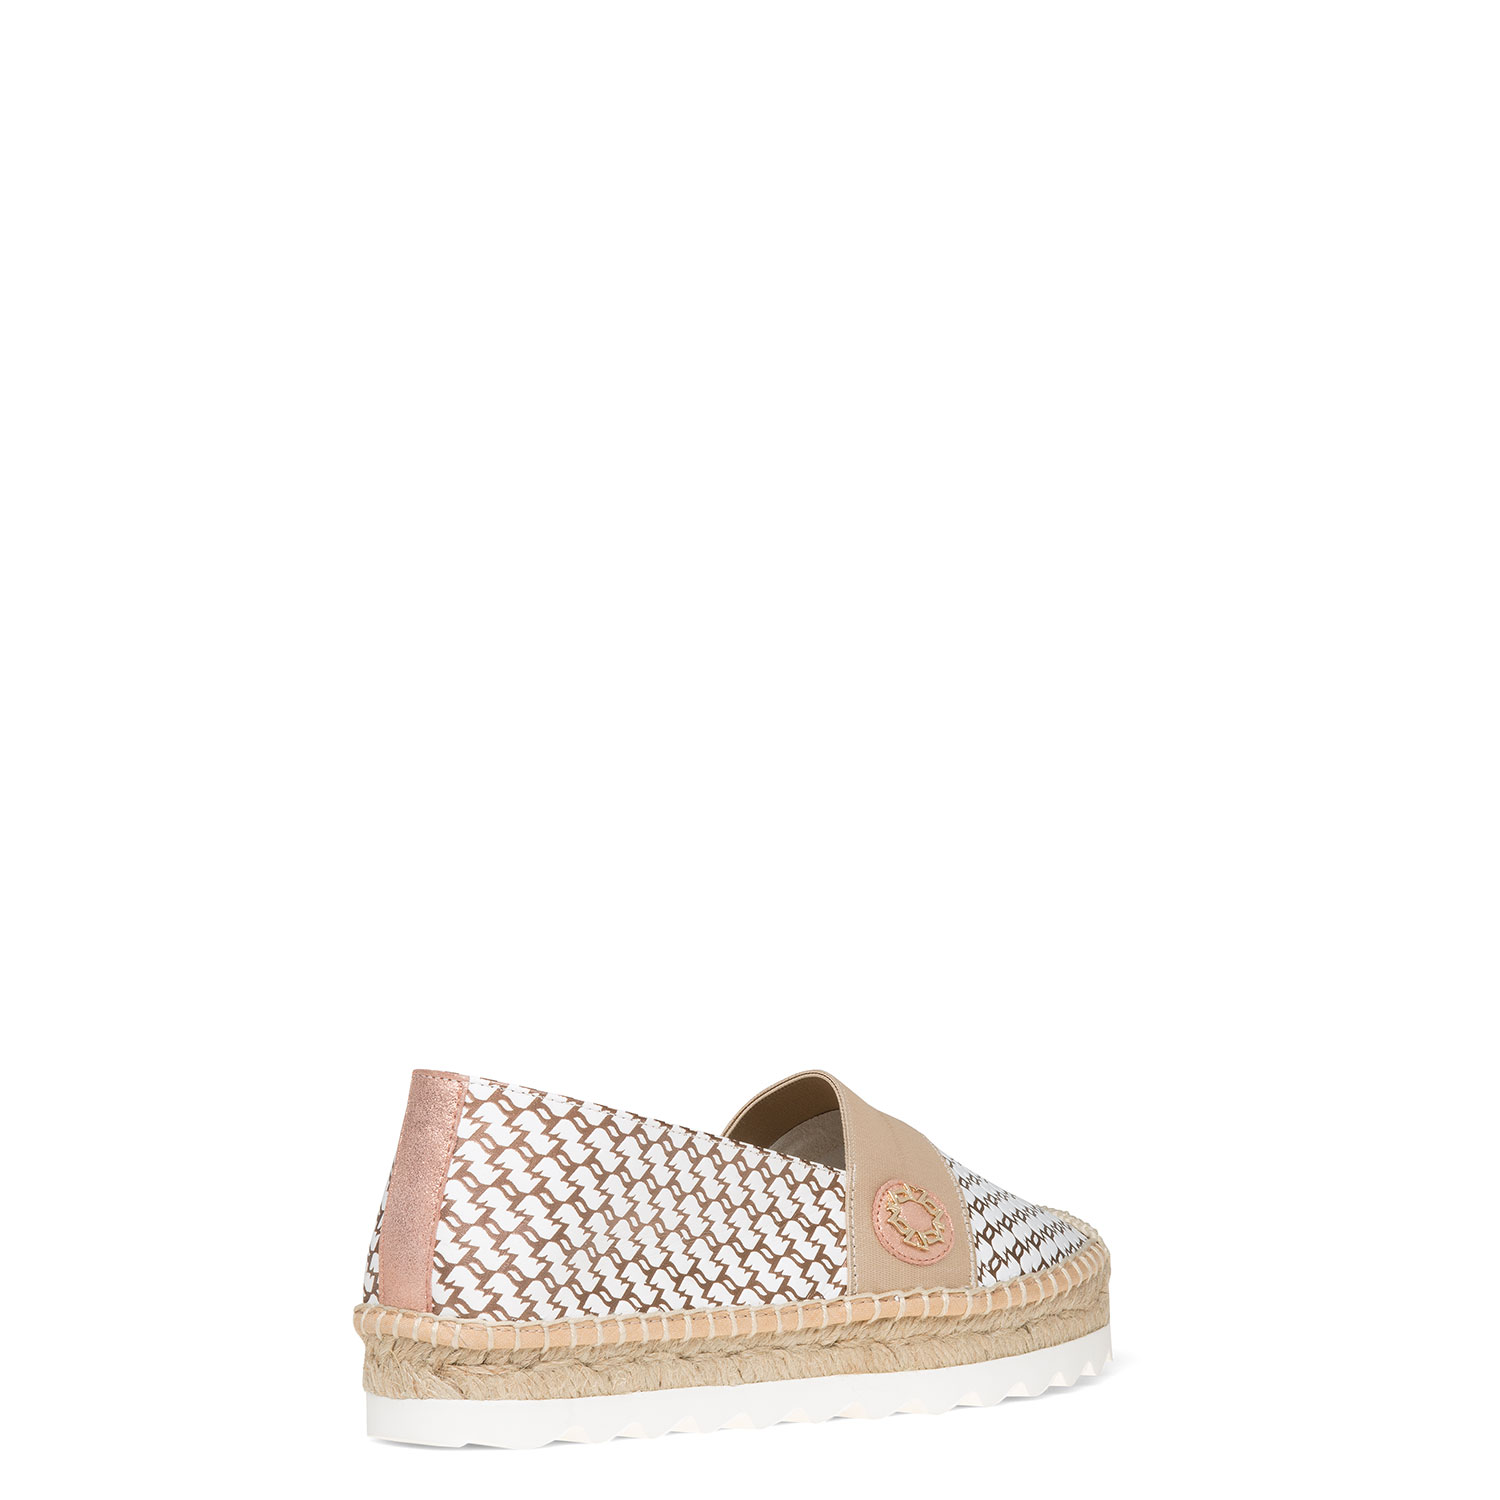 Women's shoes CARLO PAZOLINI CT-HOM1-19